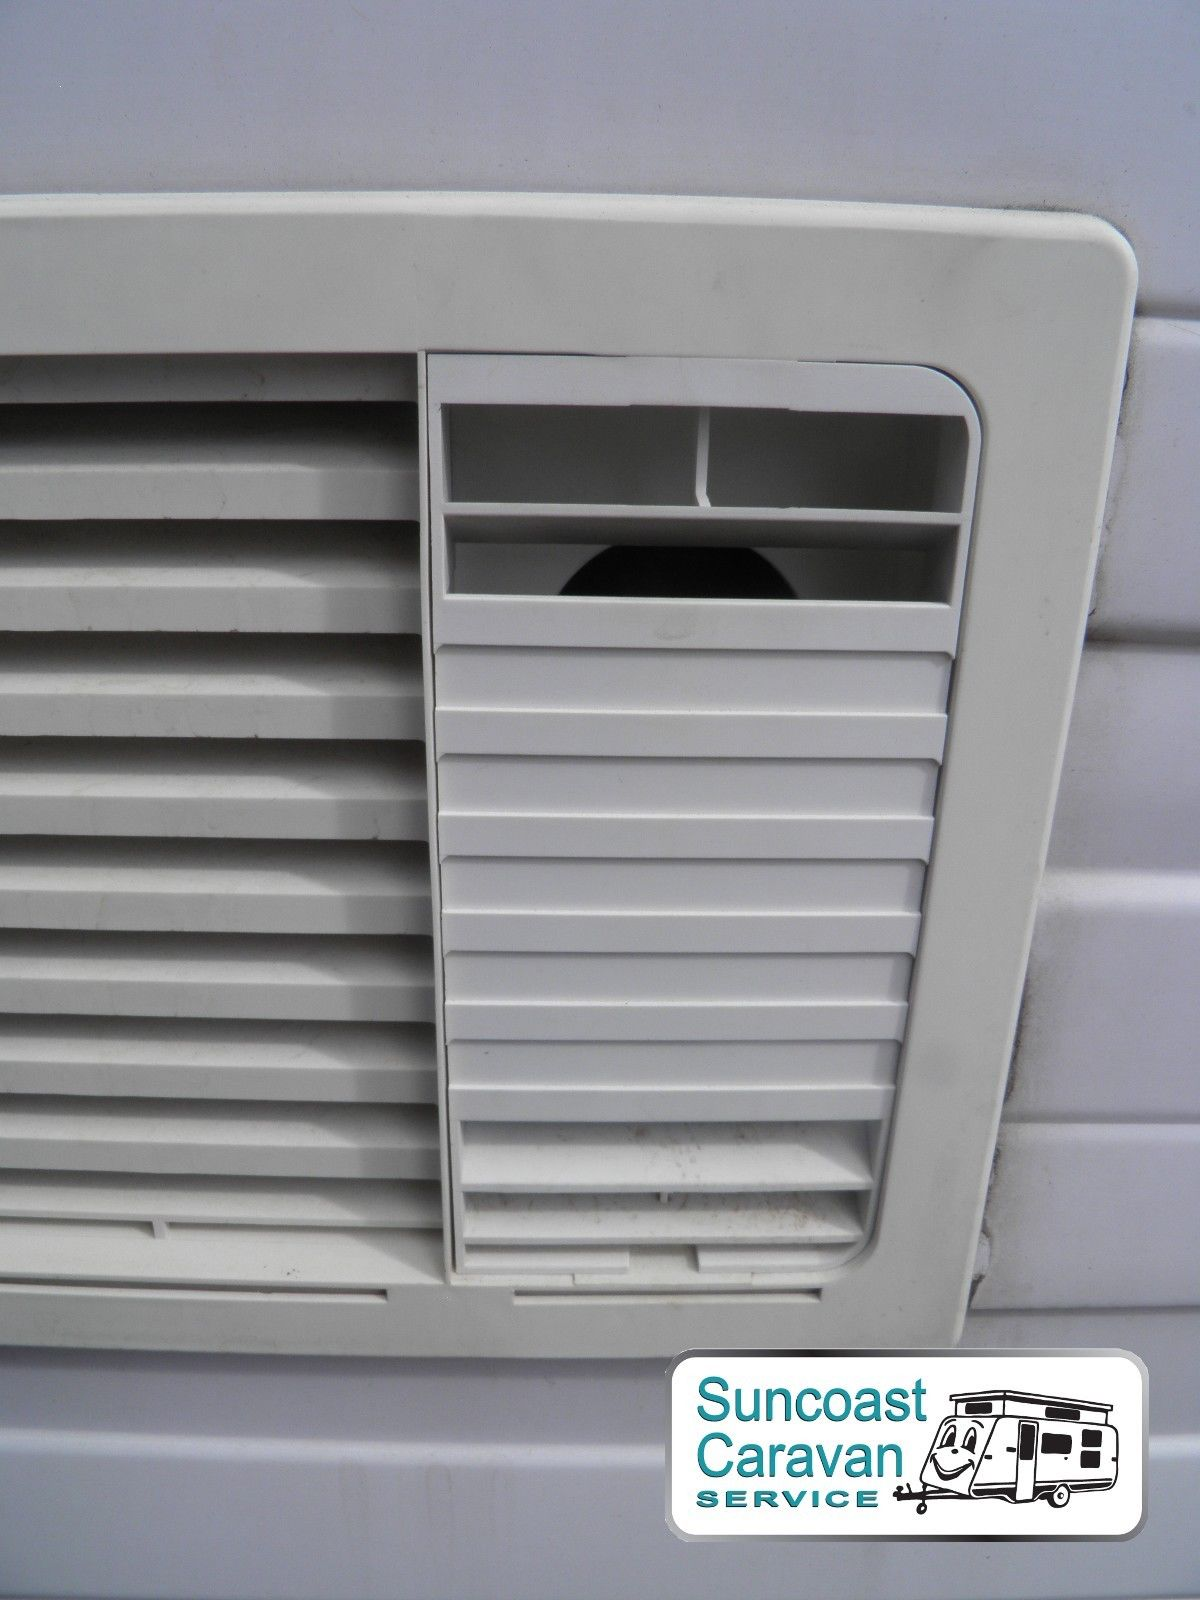 Dometic Caravan Fridge Upper Vent Small Insert White